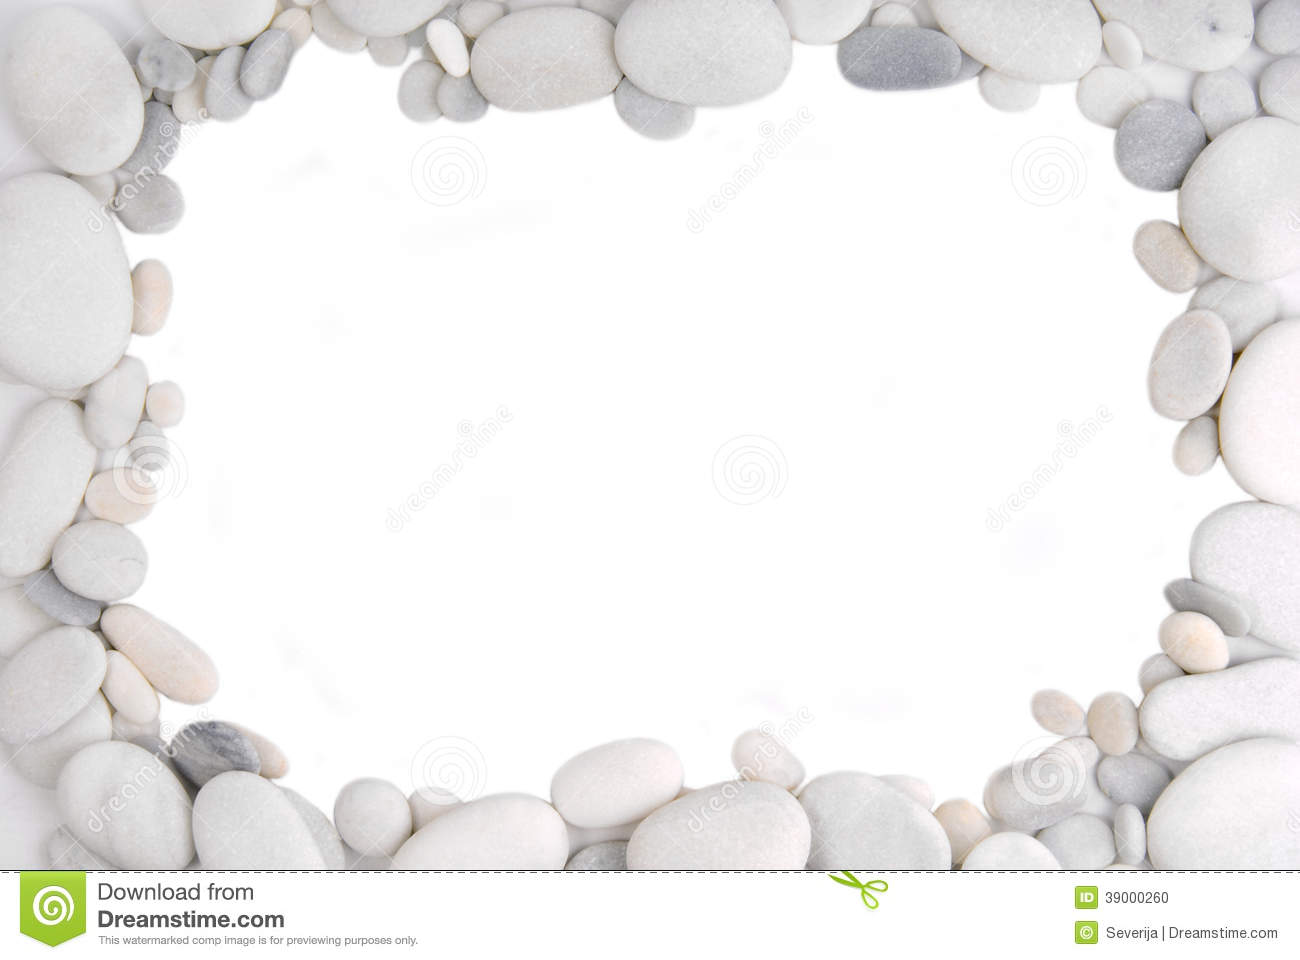 White Pebble Stone Frame Border Stock Photo - Image: 39000260